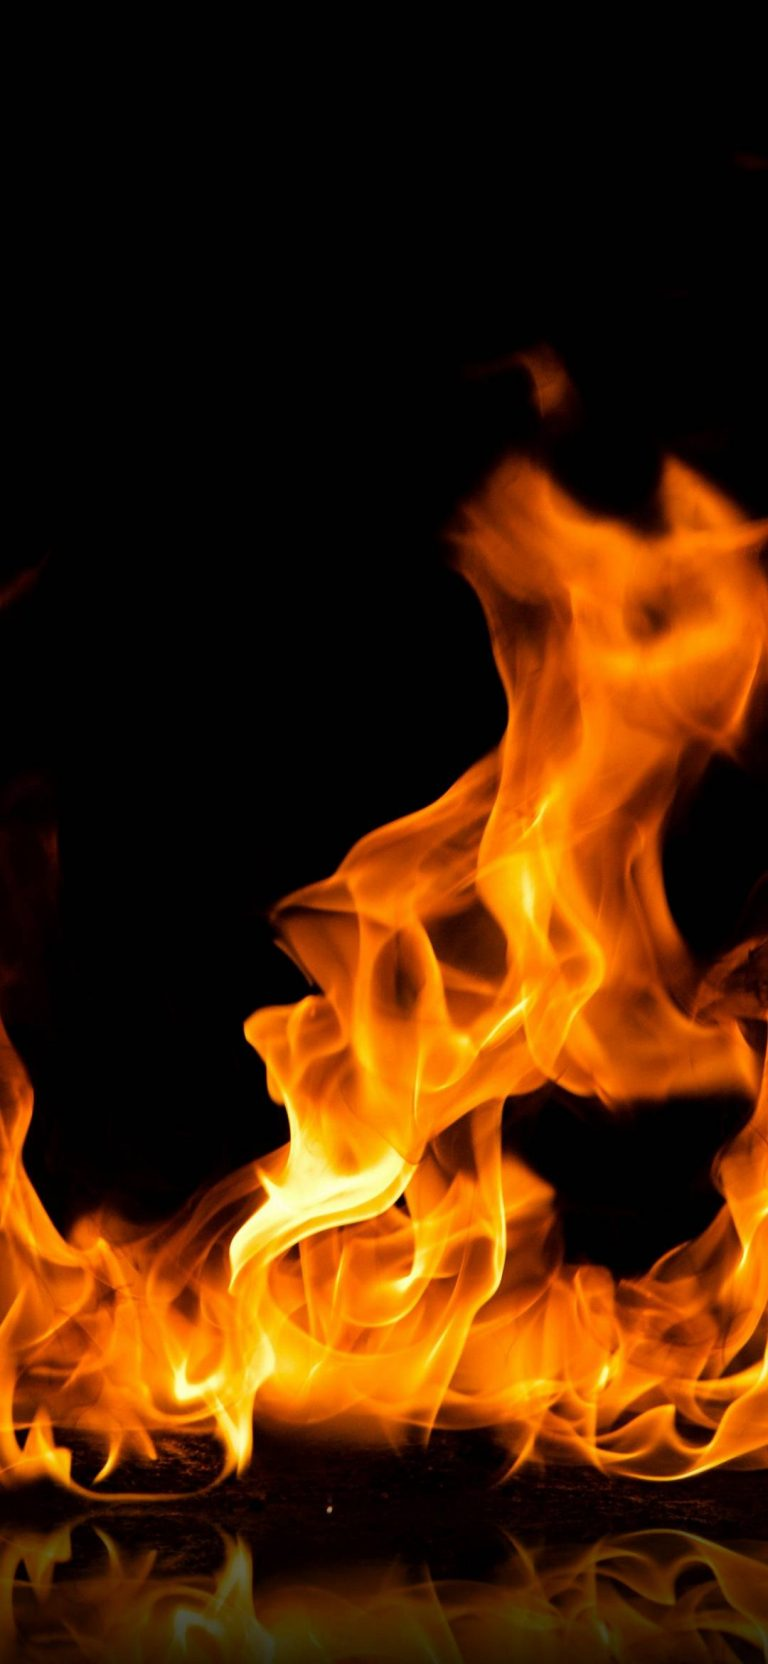 Fire Hd Wallpaper 1080x2340 768x1664